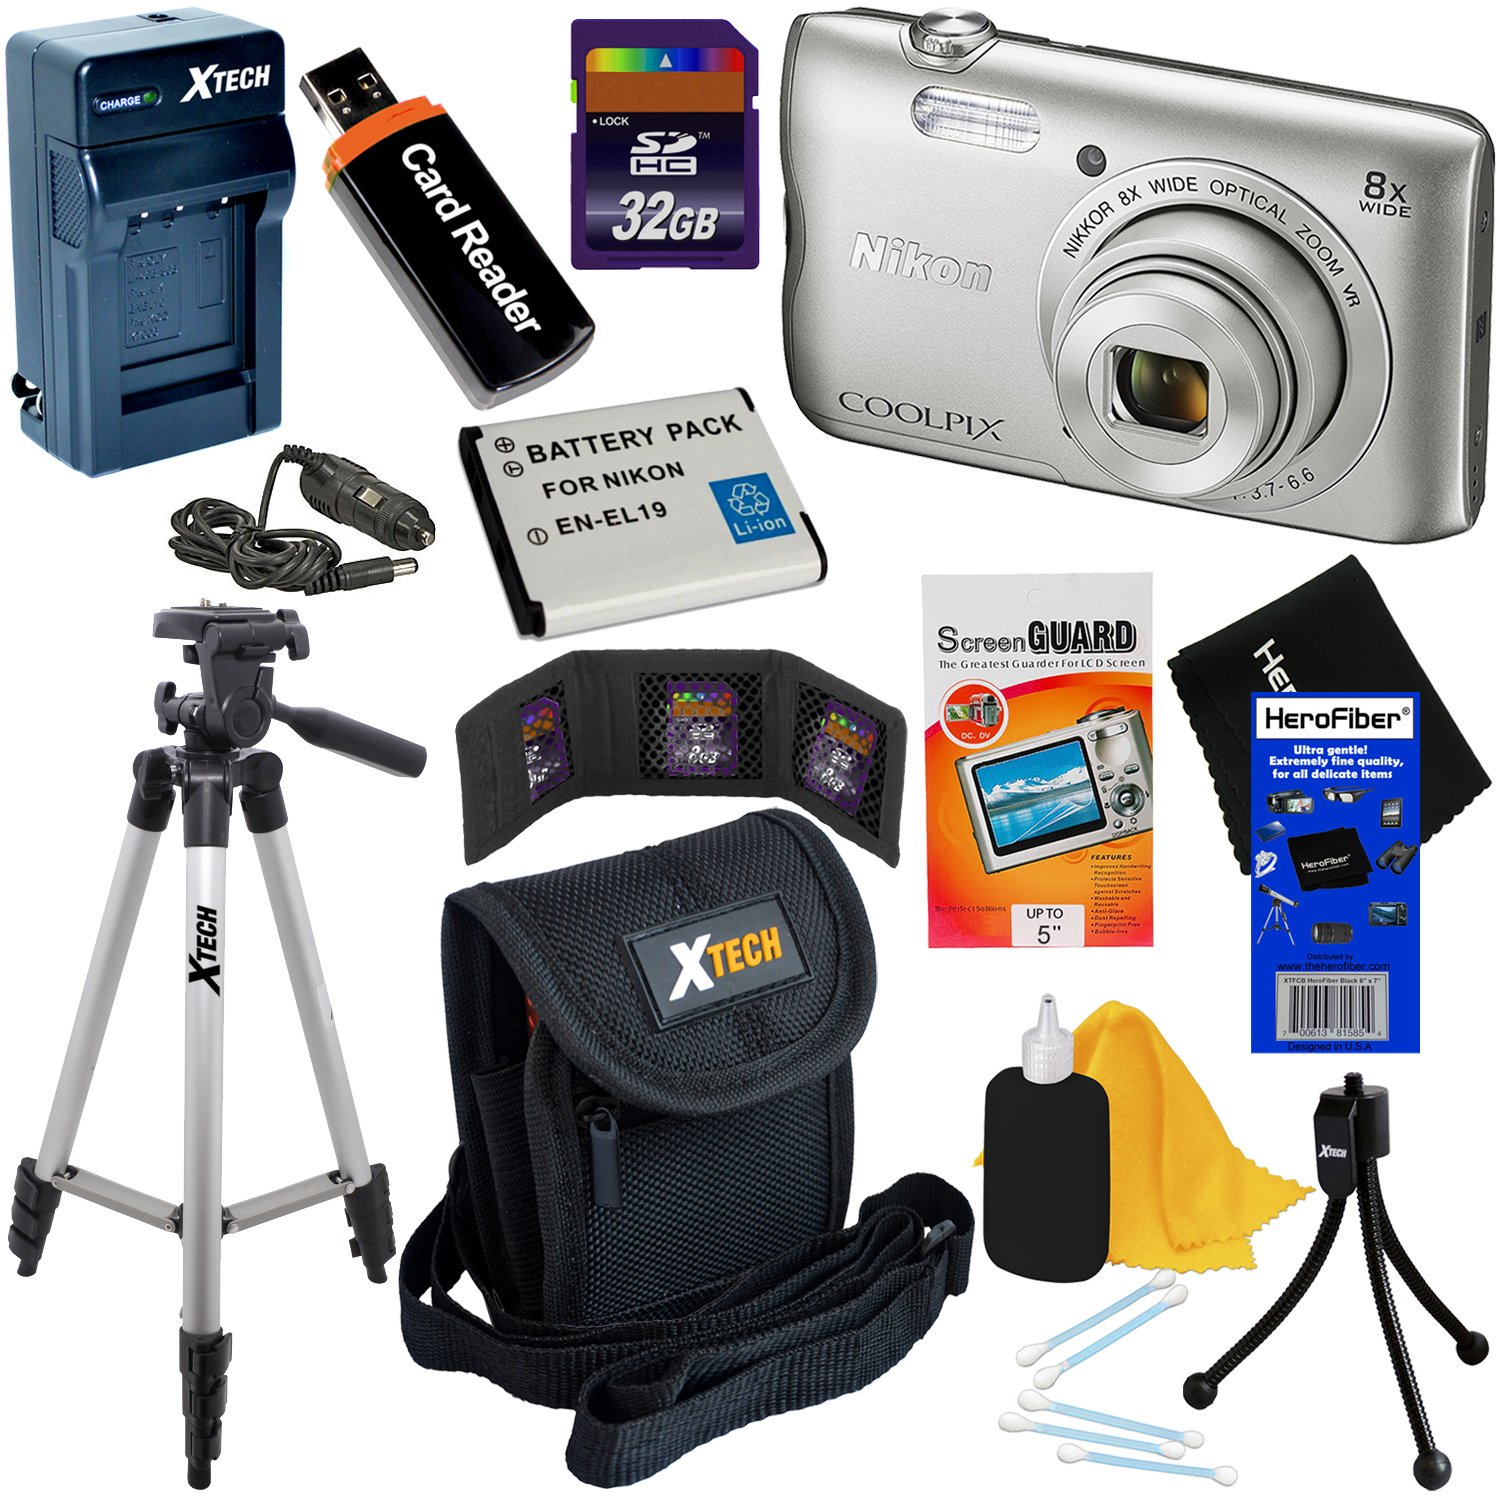 Nikon COOLPIX A300 20.1MP Digital Camera with 8x Zoom Lens & Built-in Wi-Fi (Silver) - International Version (No Warranty) + Battery & AC/DC Charger + 10pc 32GB Dlx Accessory Kit w/HeroFiber Cloth